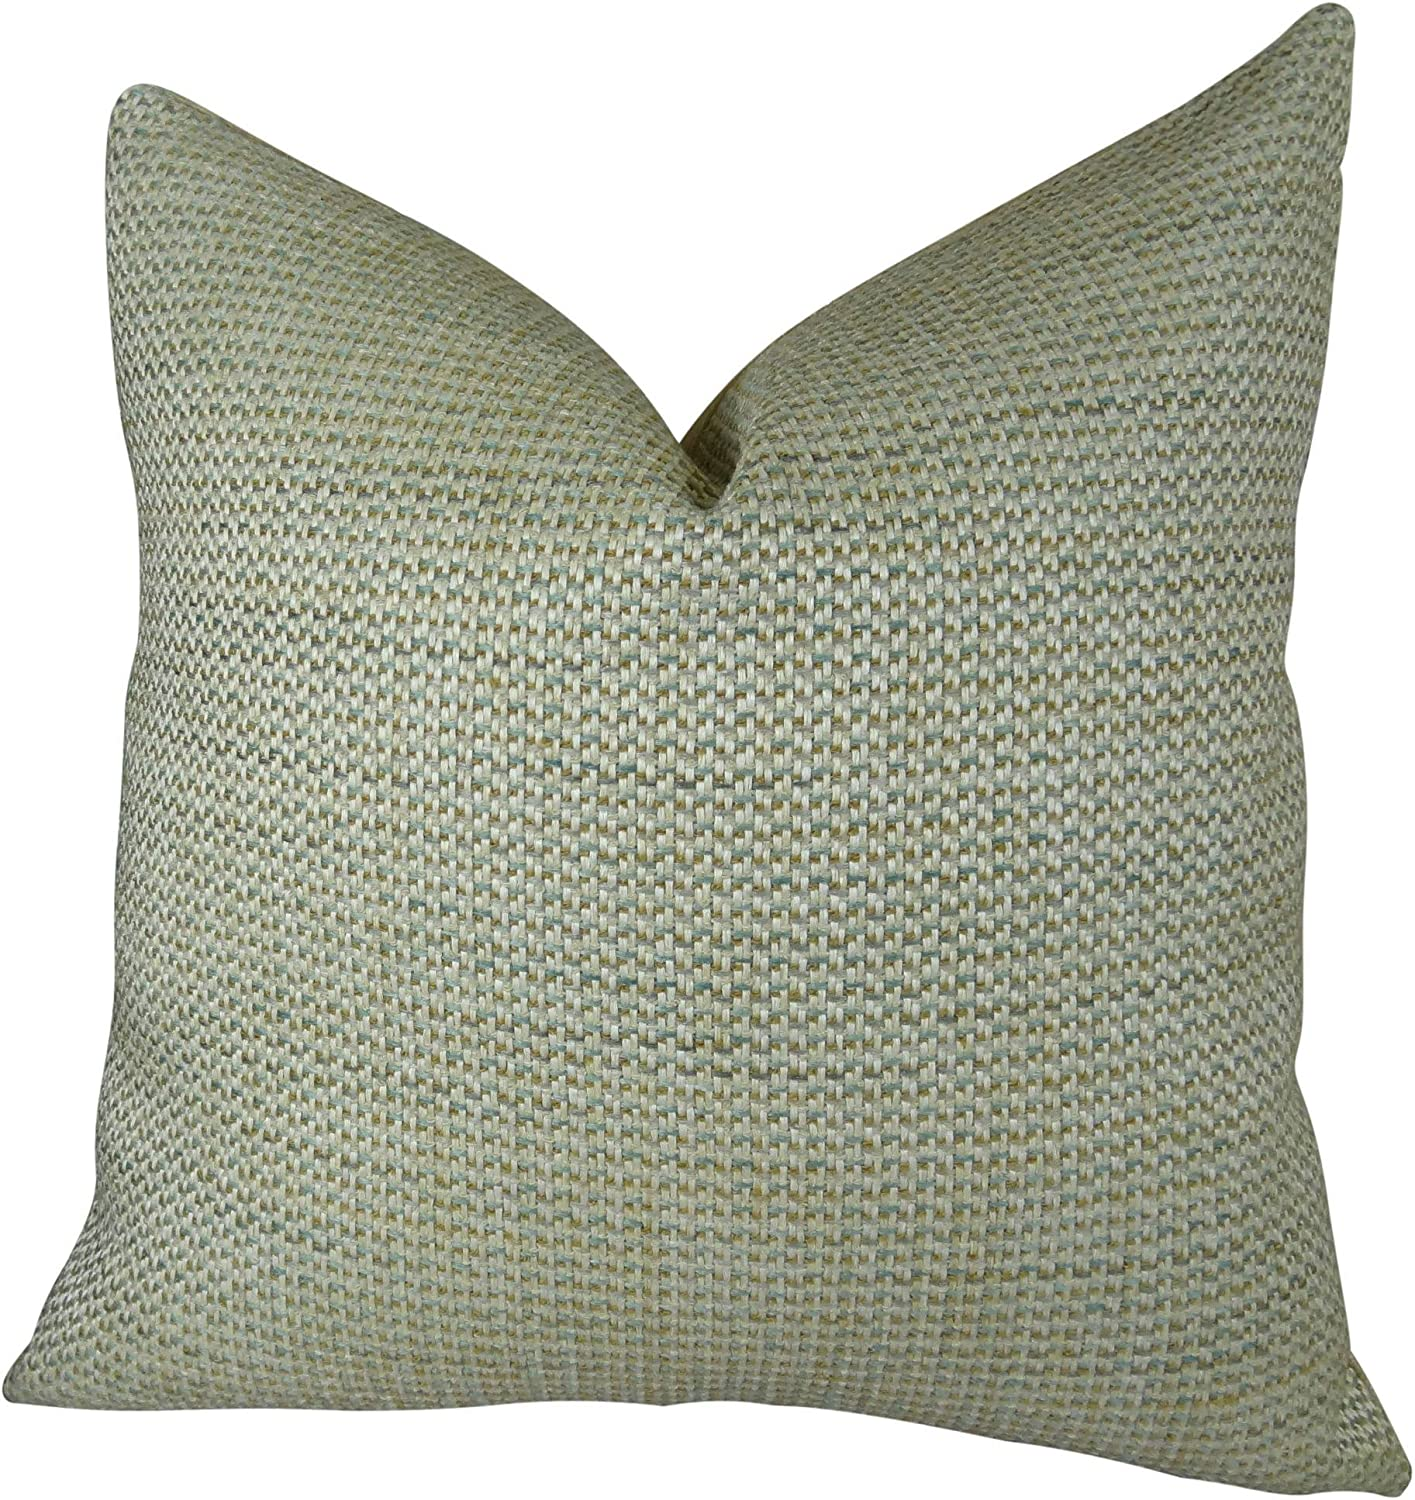 Thomas Collection Handmade in USA Luxury Decorative Pillow for Couch Sofa Bed, Made in USA Pillow Insert & Cover, Light Green Solid Pillow  11340